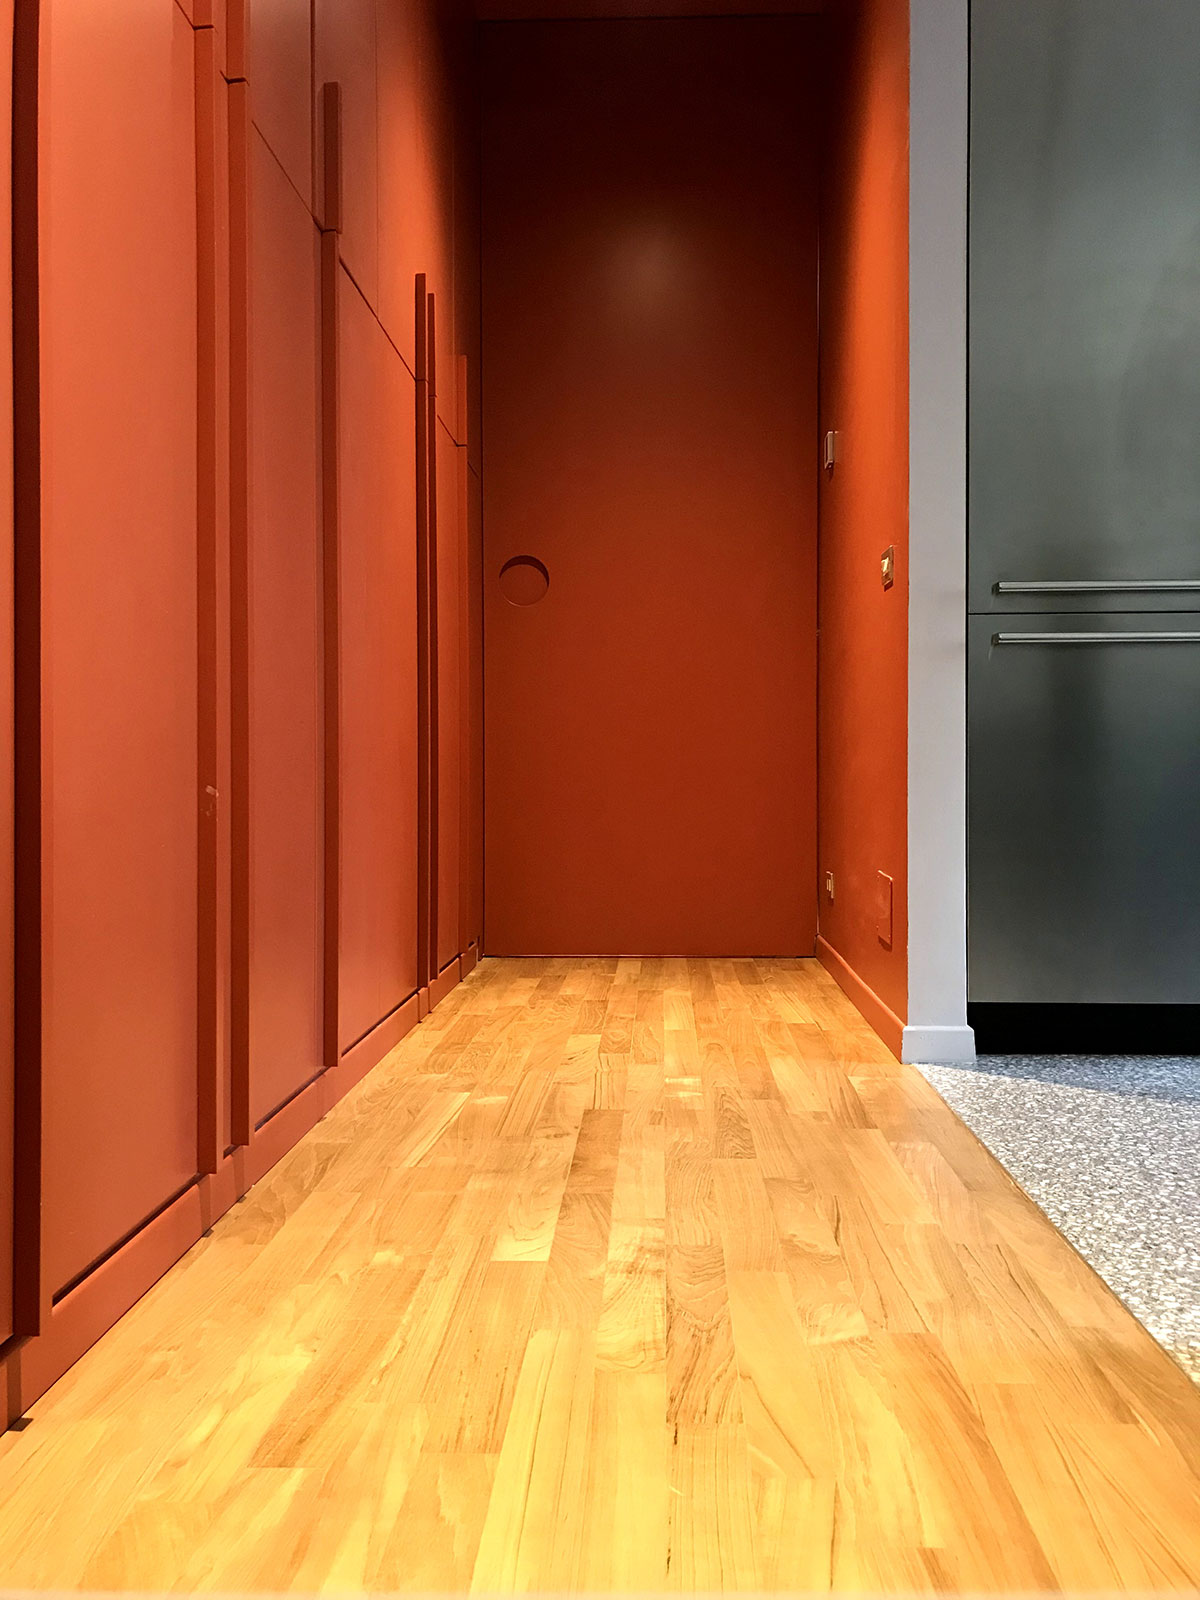 kickoffice casa cb hallway corridor parquet color door closed